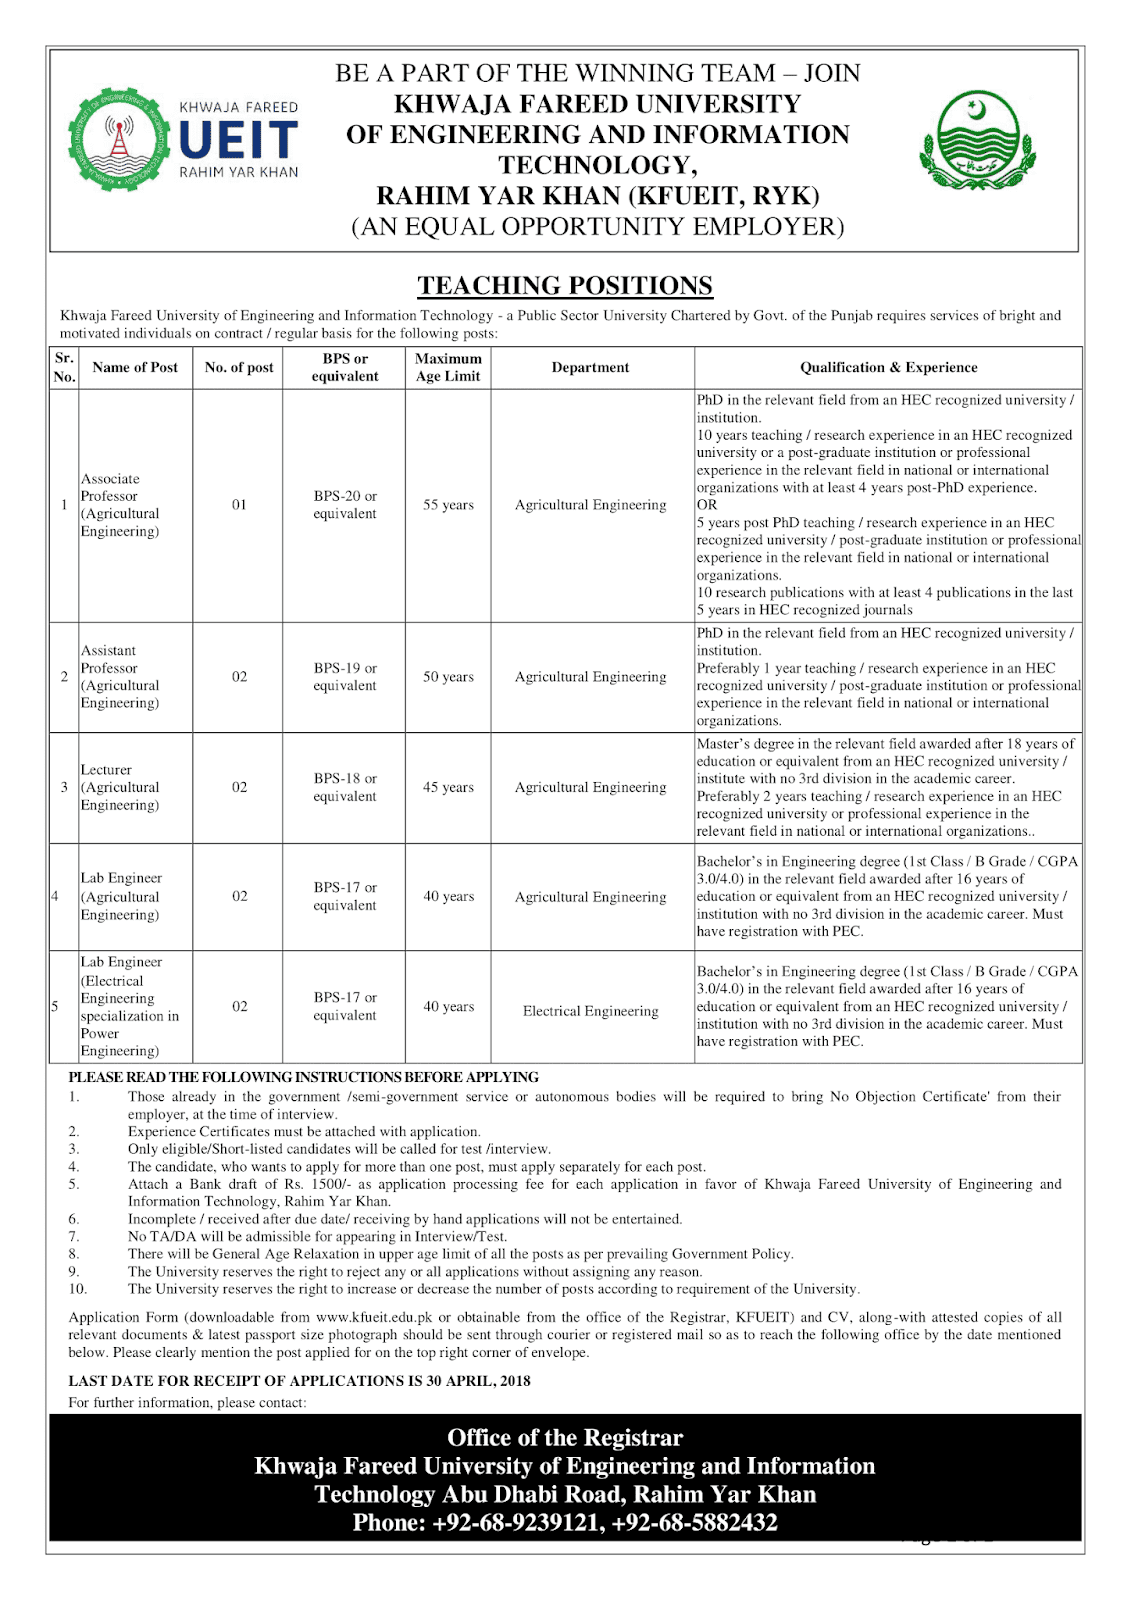 Teaching Jobs Agricultural Engineering at KFUEIT Rahim Yar Khan last date 30 April 2018